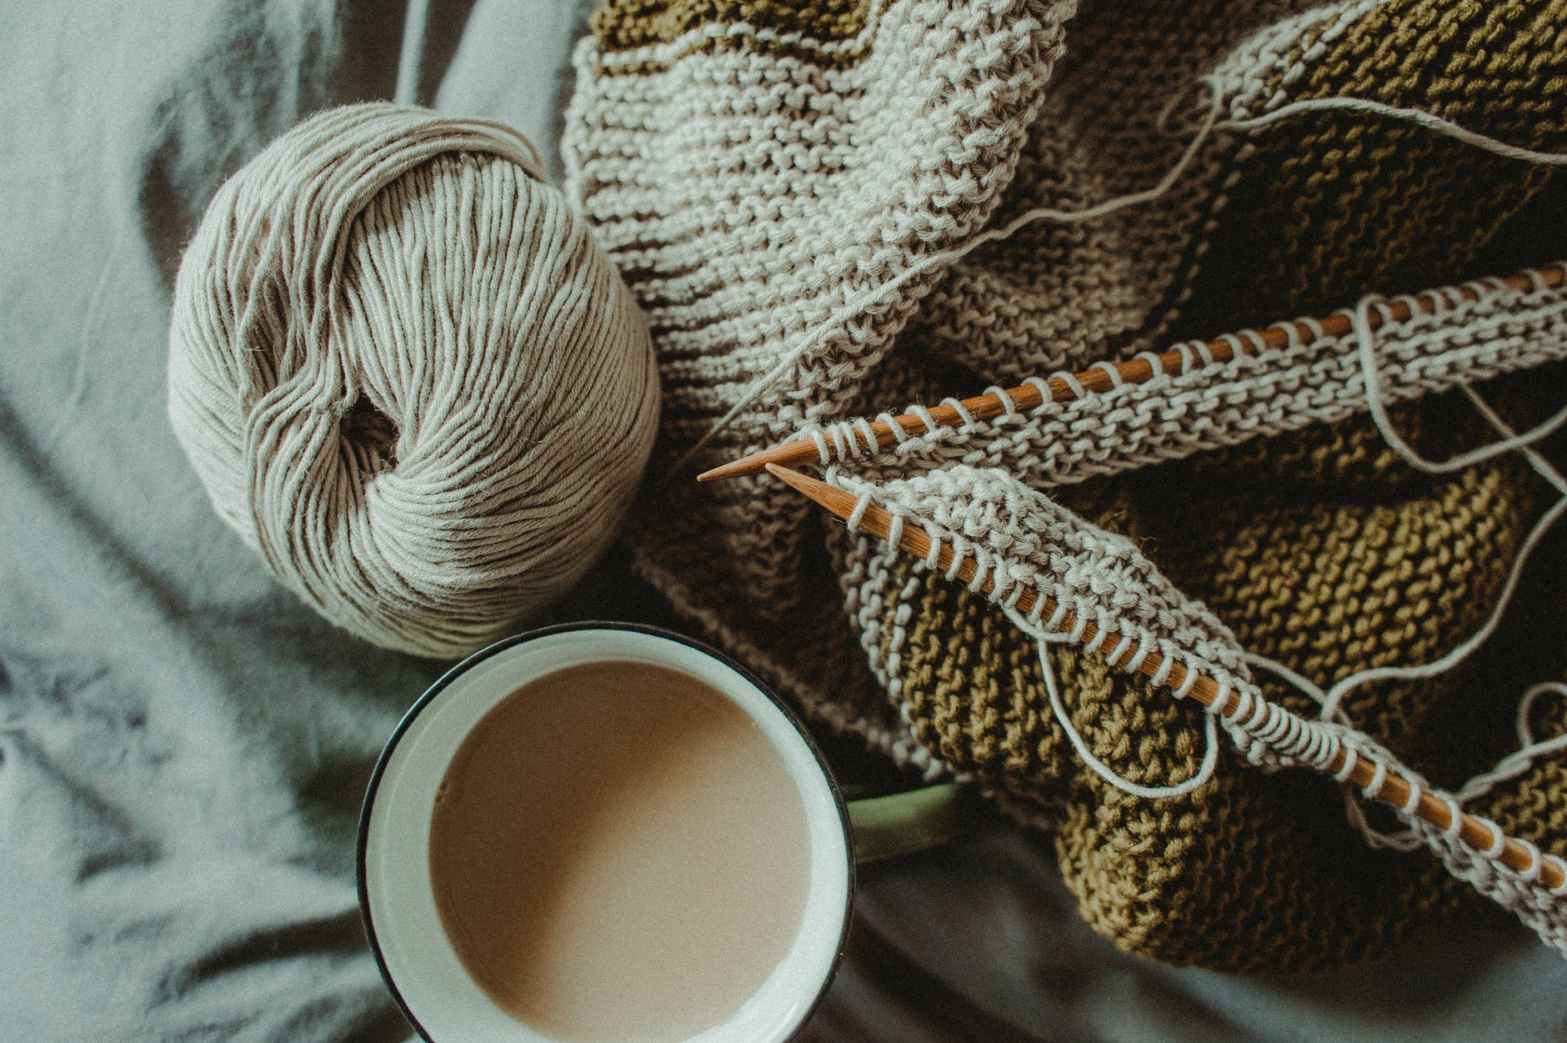 knitting supplies and cup of coffee placed on bed